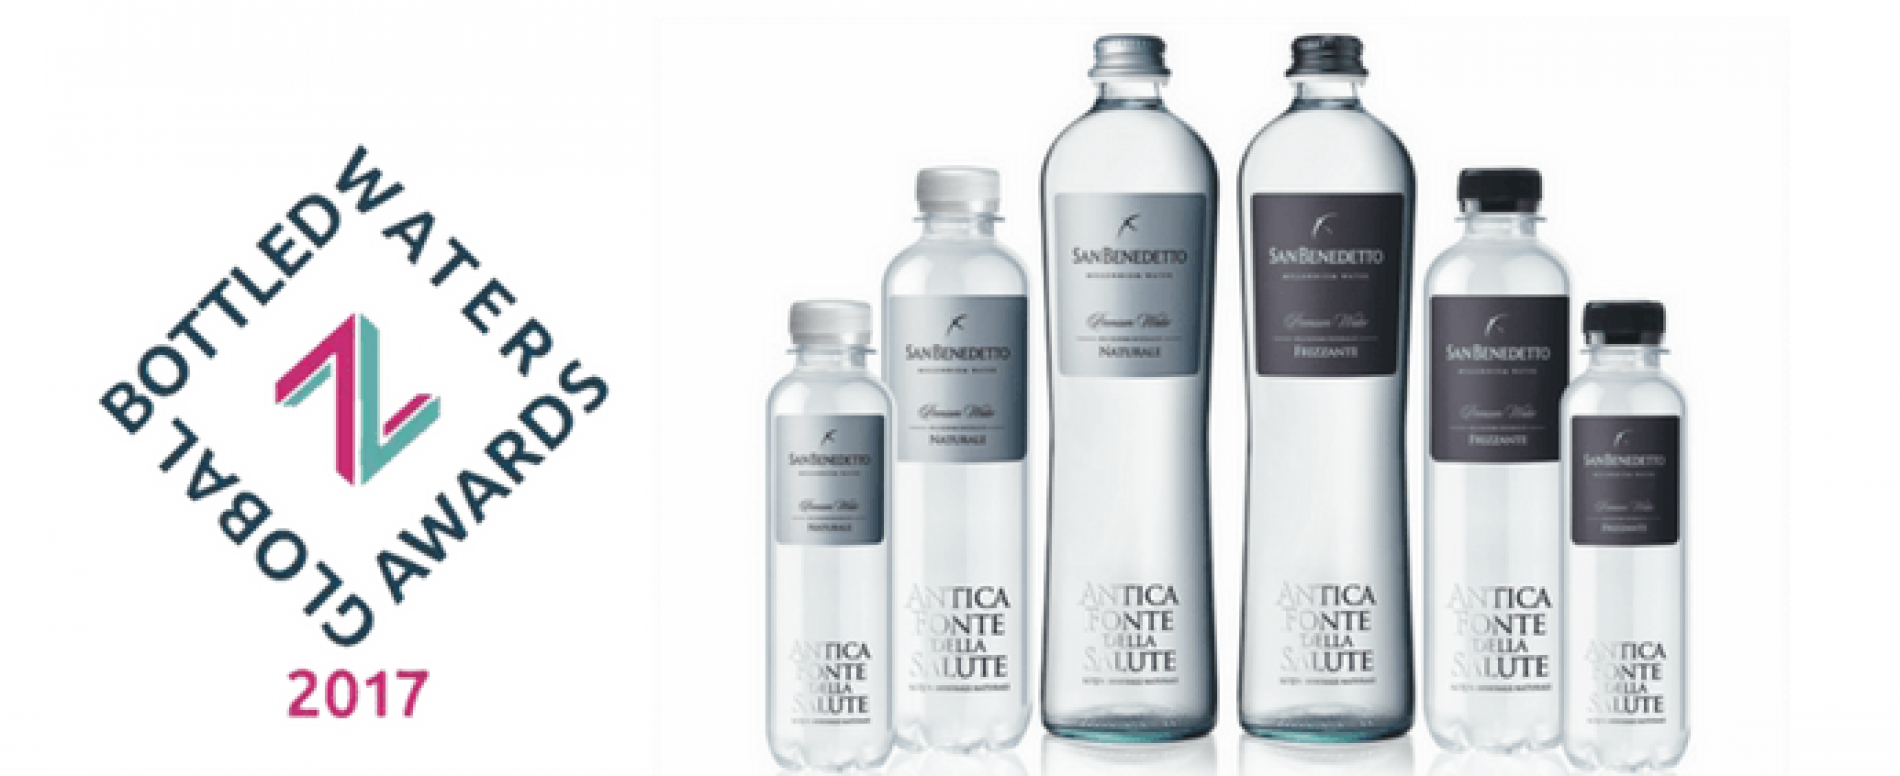 San Benedetto premiata ai Global Bottled Water Awards